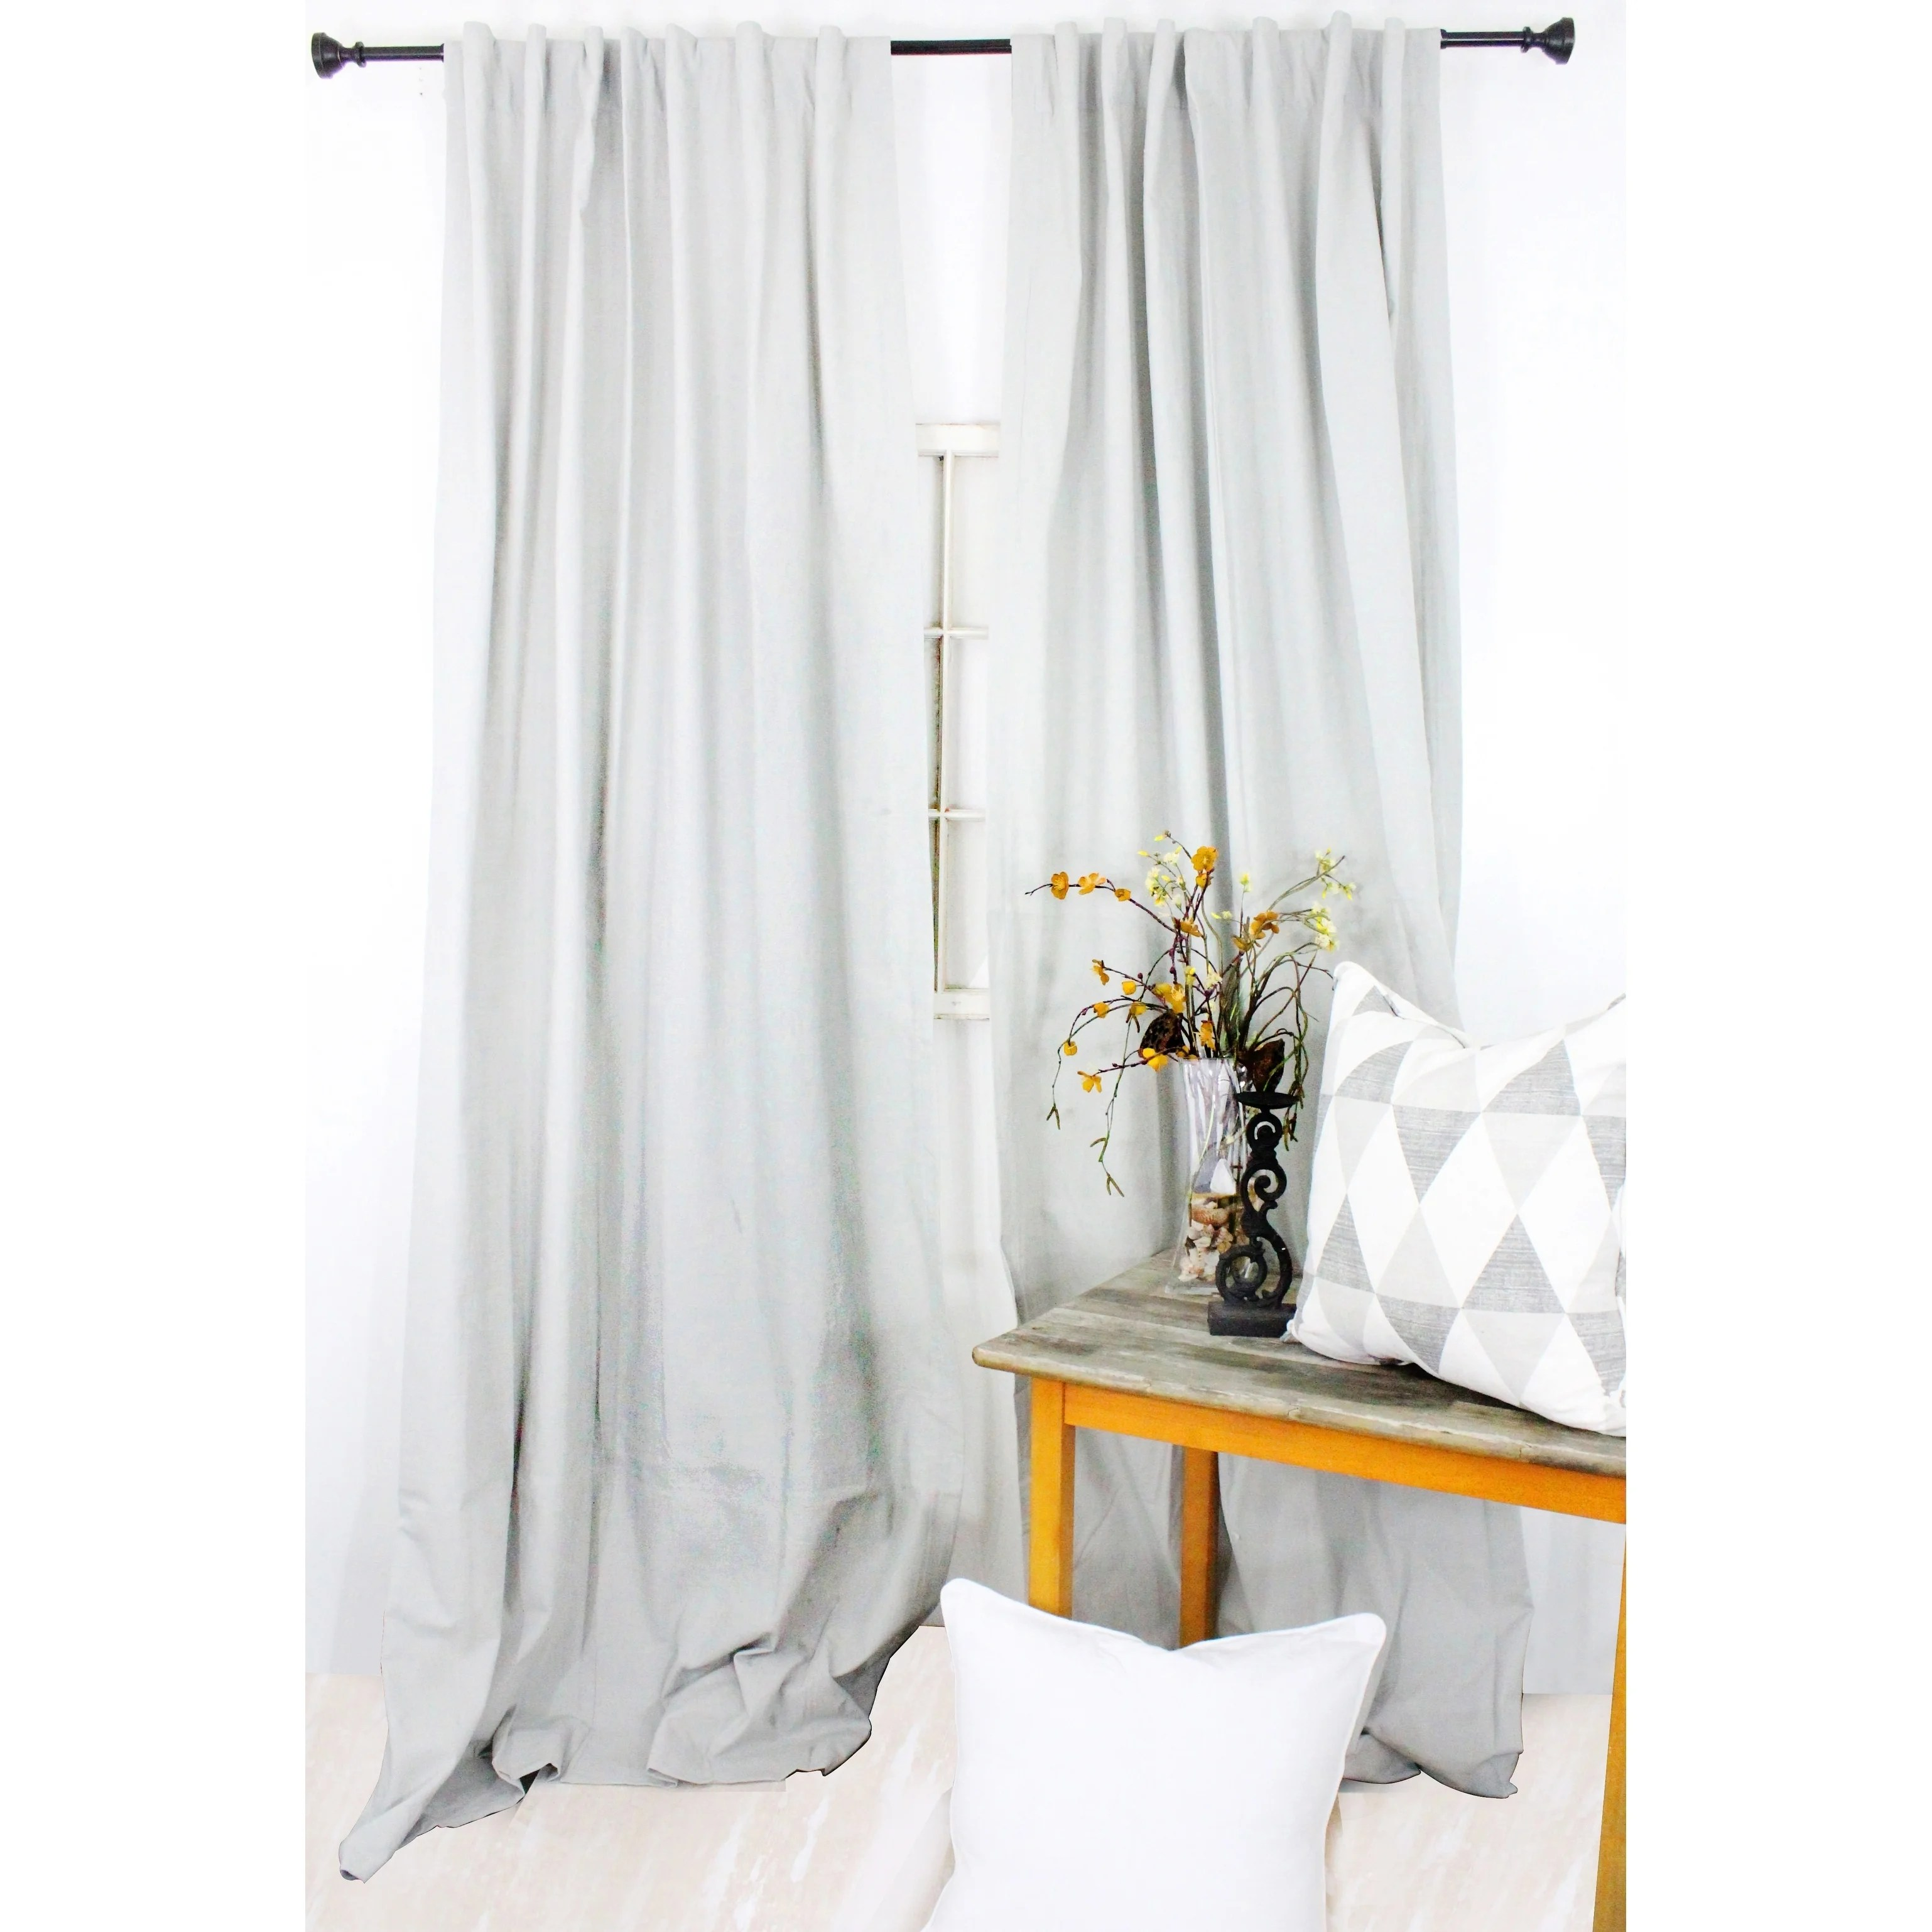 Cotton Curtain Panels American Colors Brand Heritage Cotton Solid Curtain Panels Mist Grey